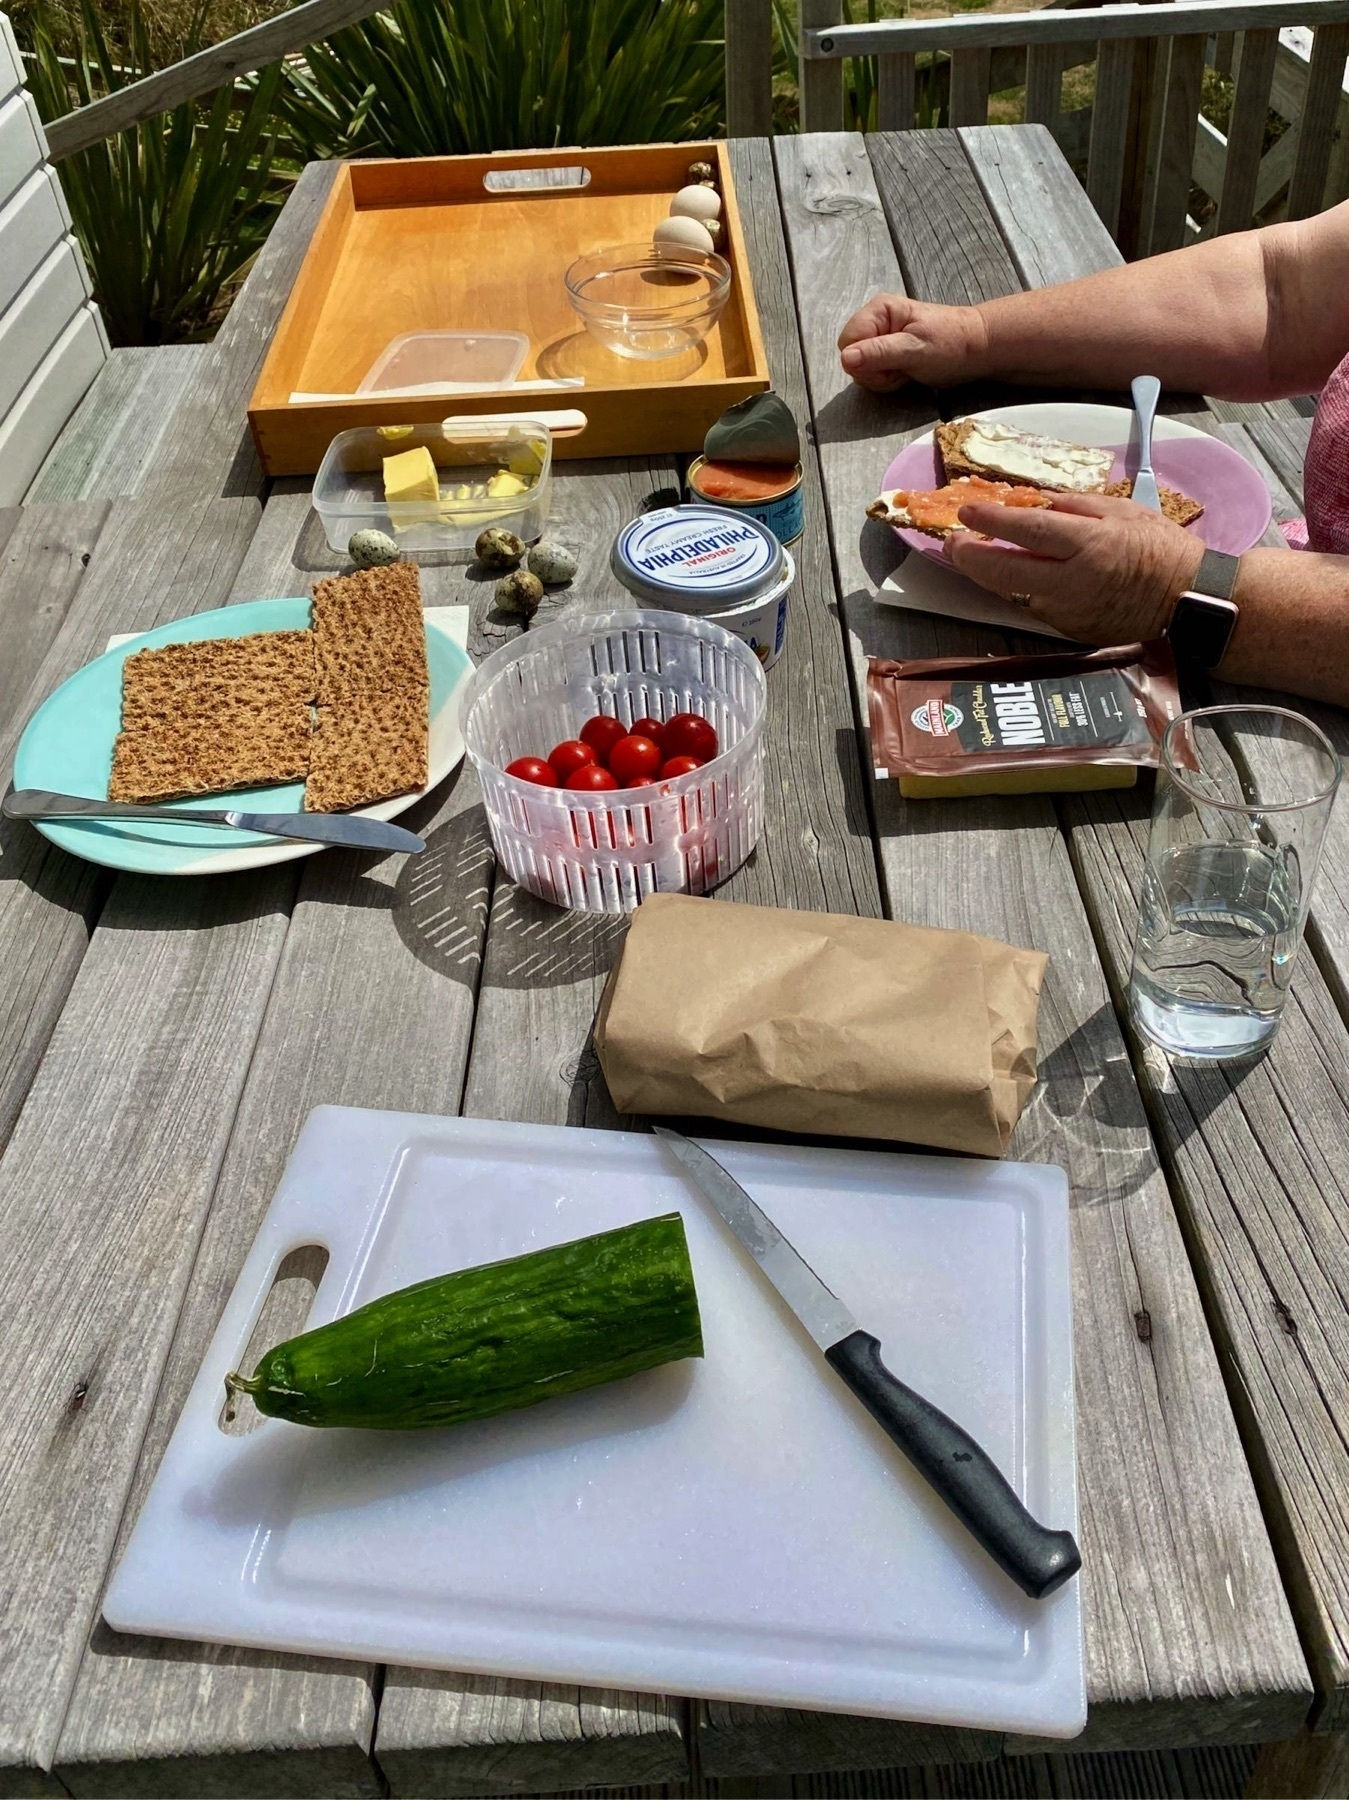 Picnic table in the sun with Swedish breakfast ingredients.